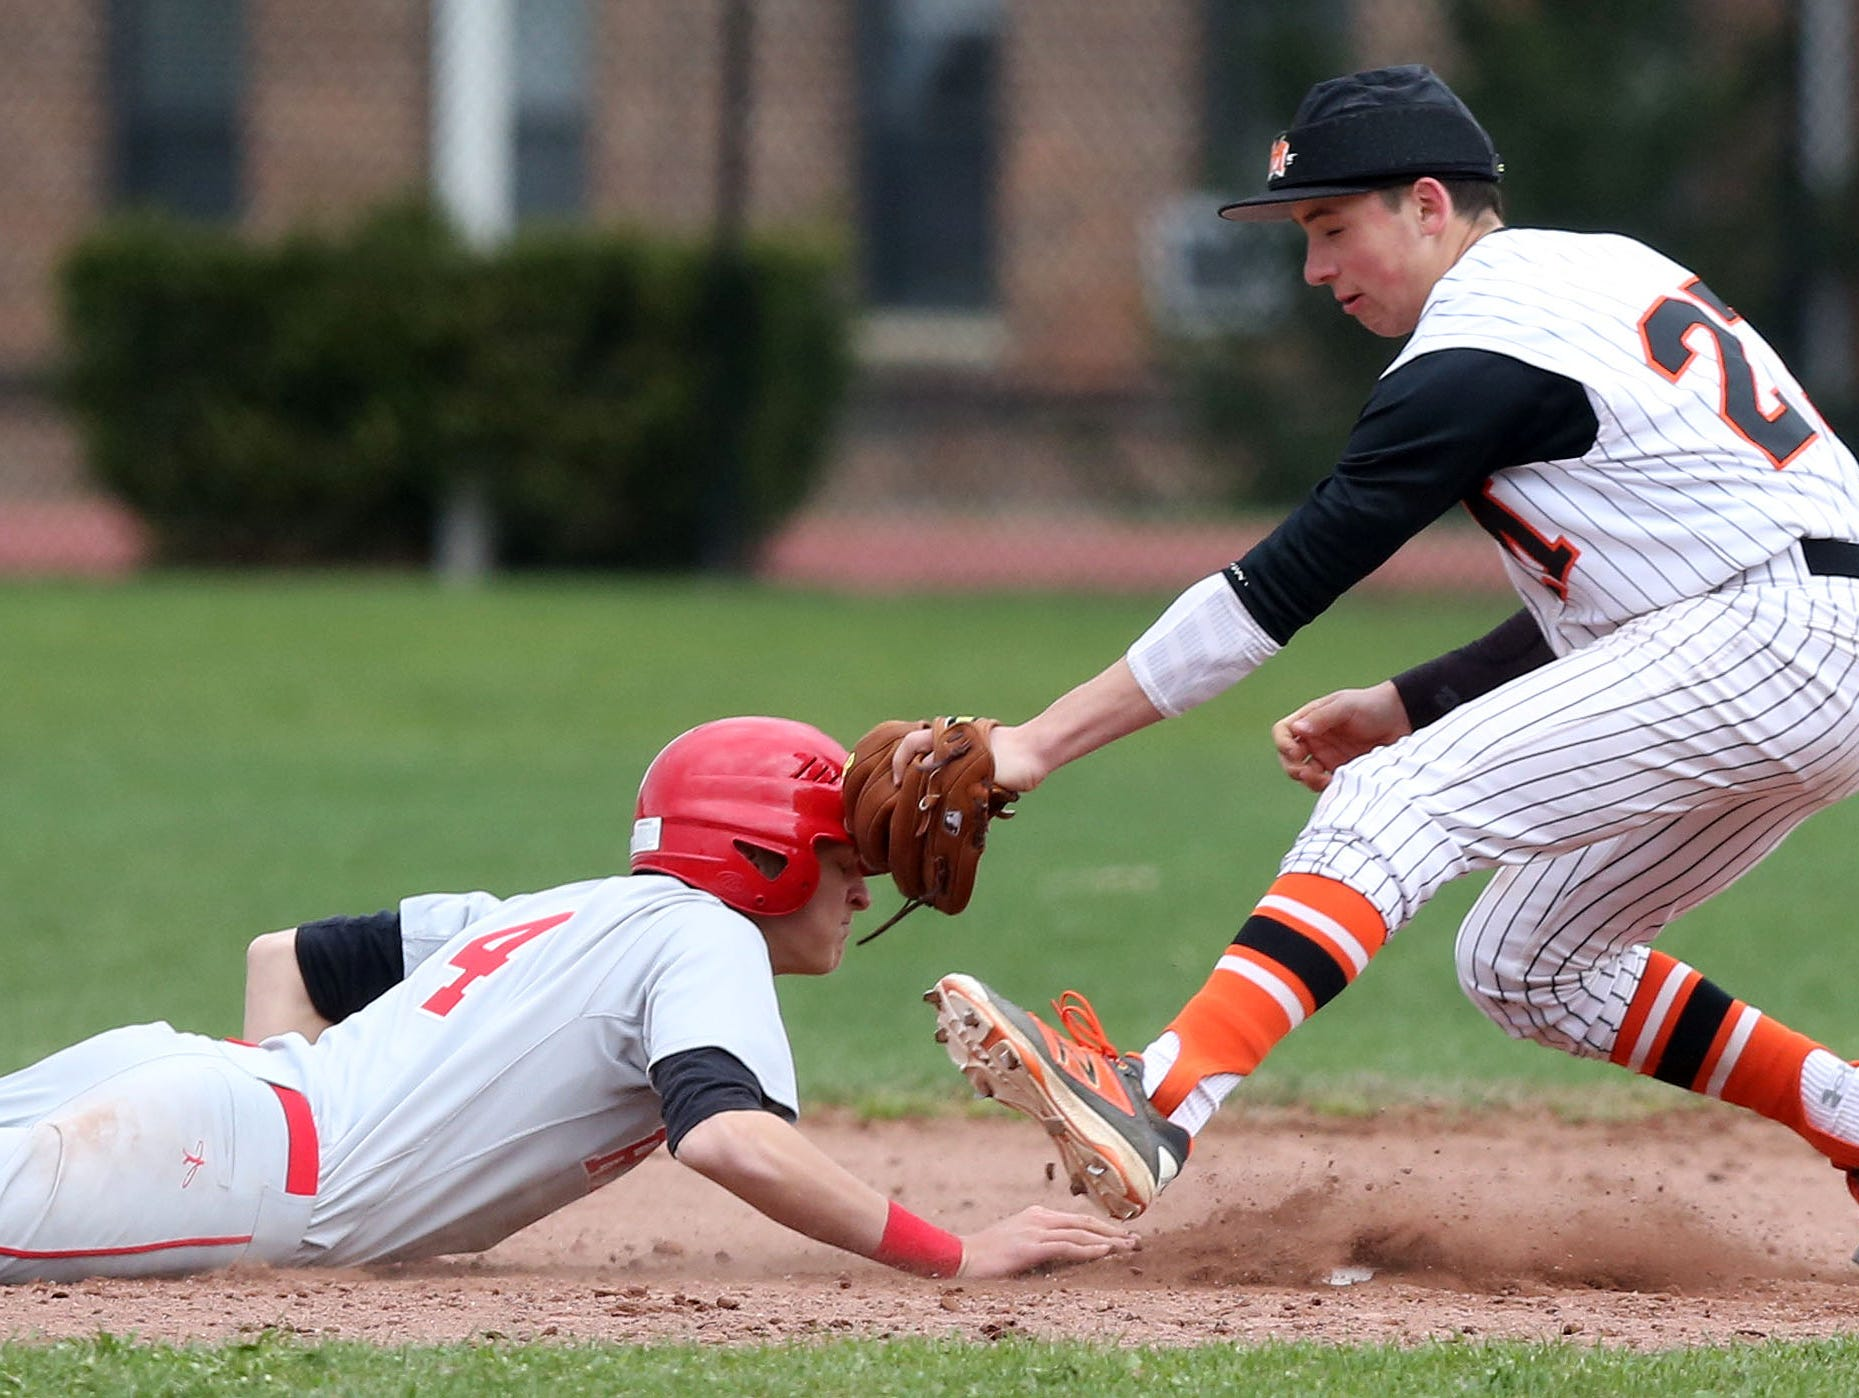 North Rockland's Ken Hoppe (4) dives back to second base on a second inning pick off attempt as Mamaroneck's Mark Adamo takes the late throw during a baseball game at Mamaroneck High School April 6, 2016. North Rockland won the game 4-1.